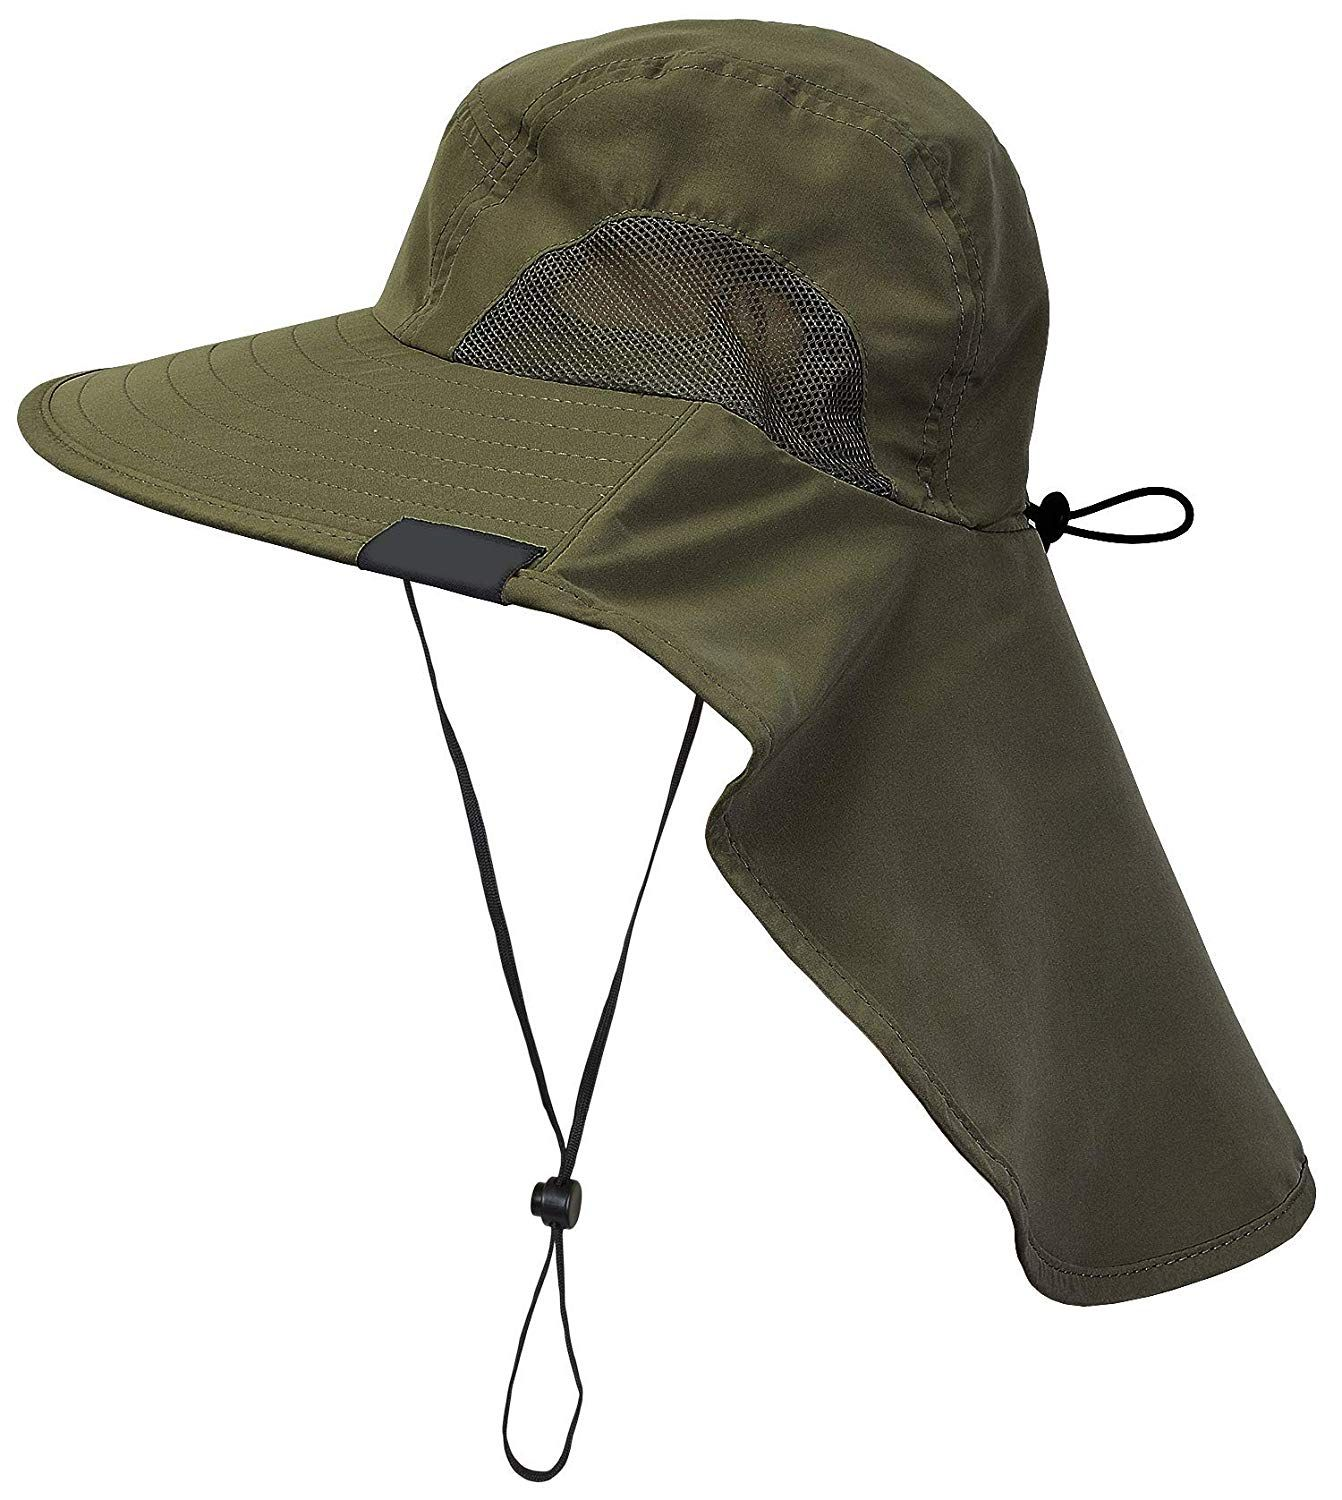 59f0b88427ade1 CAMOLAND Camouflage Outdoor Fishing Boonie Hat with Wide Brim UV Protection  Summer Safari Sling Bucket Cap UPF 50+ | Hunting & Fishing | Bucket cap,  Hats, ...